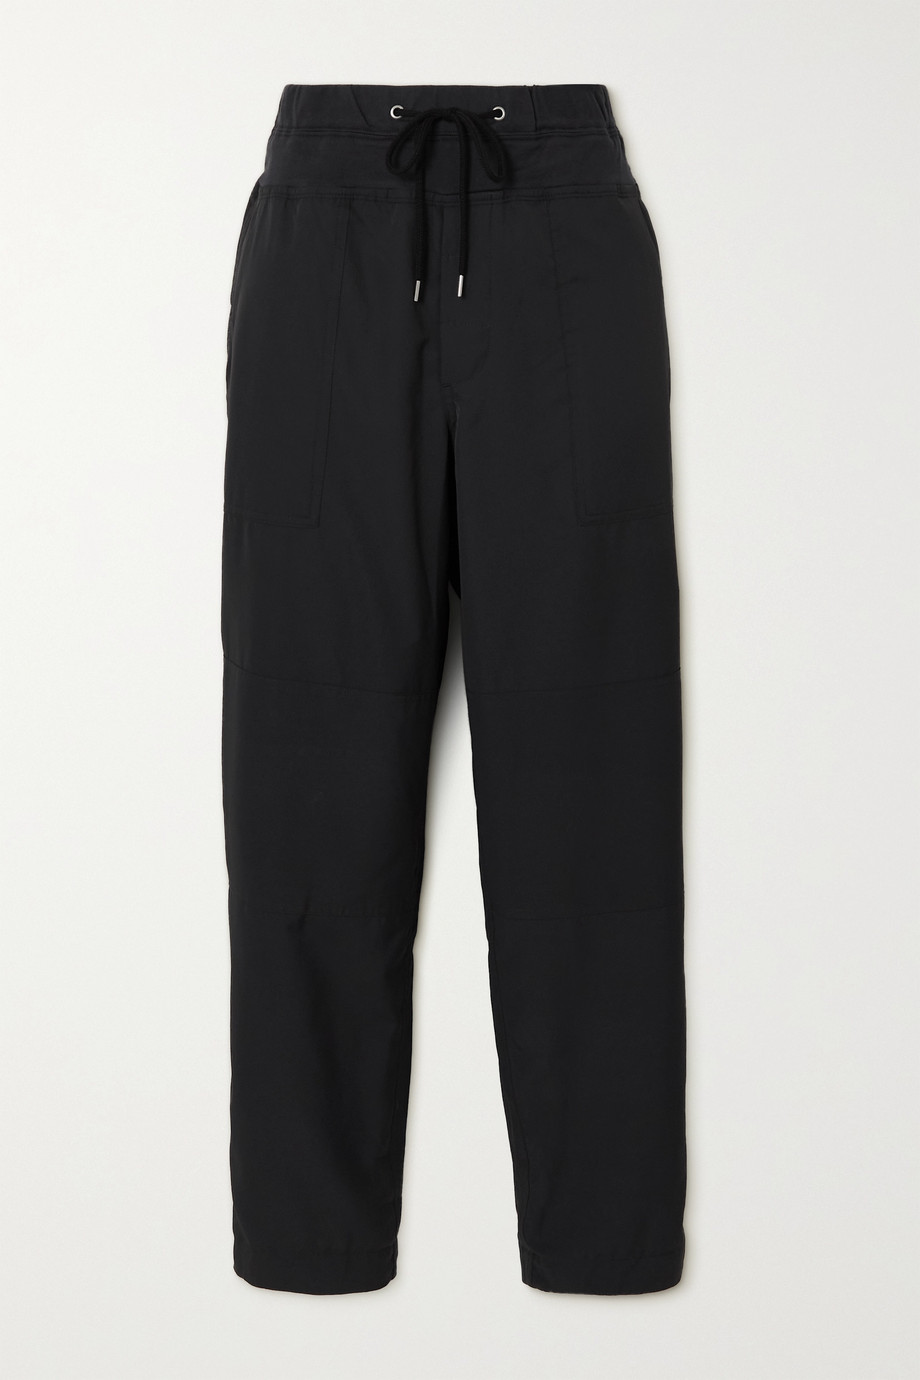 James Perse Cropped woven track pants